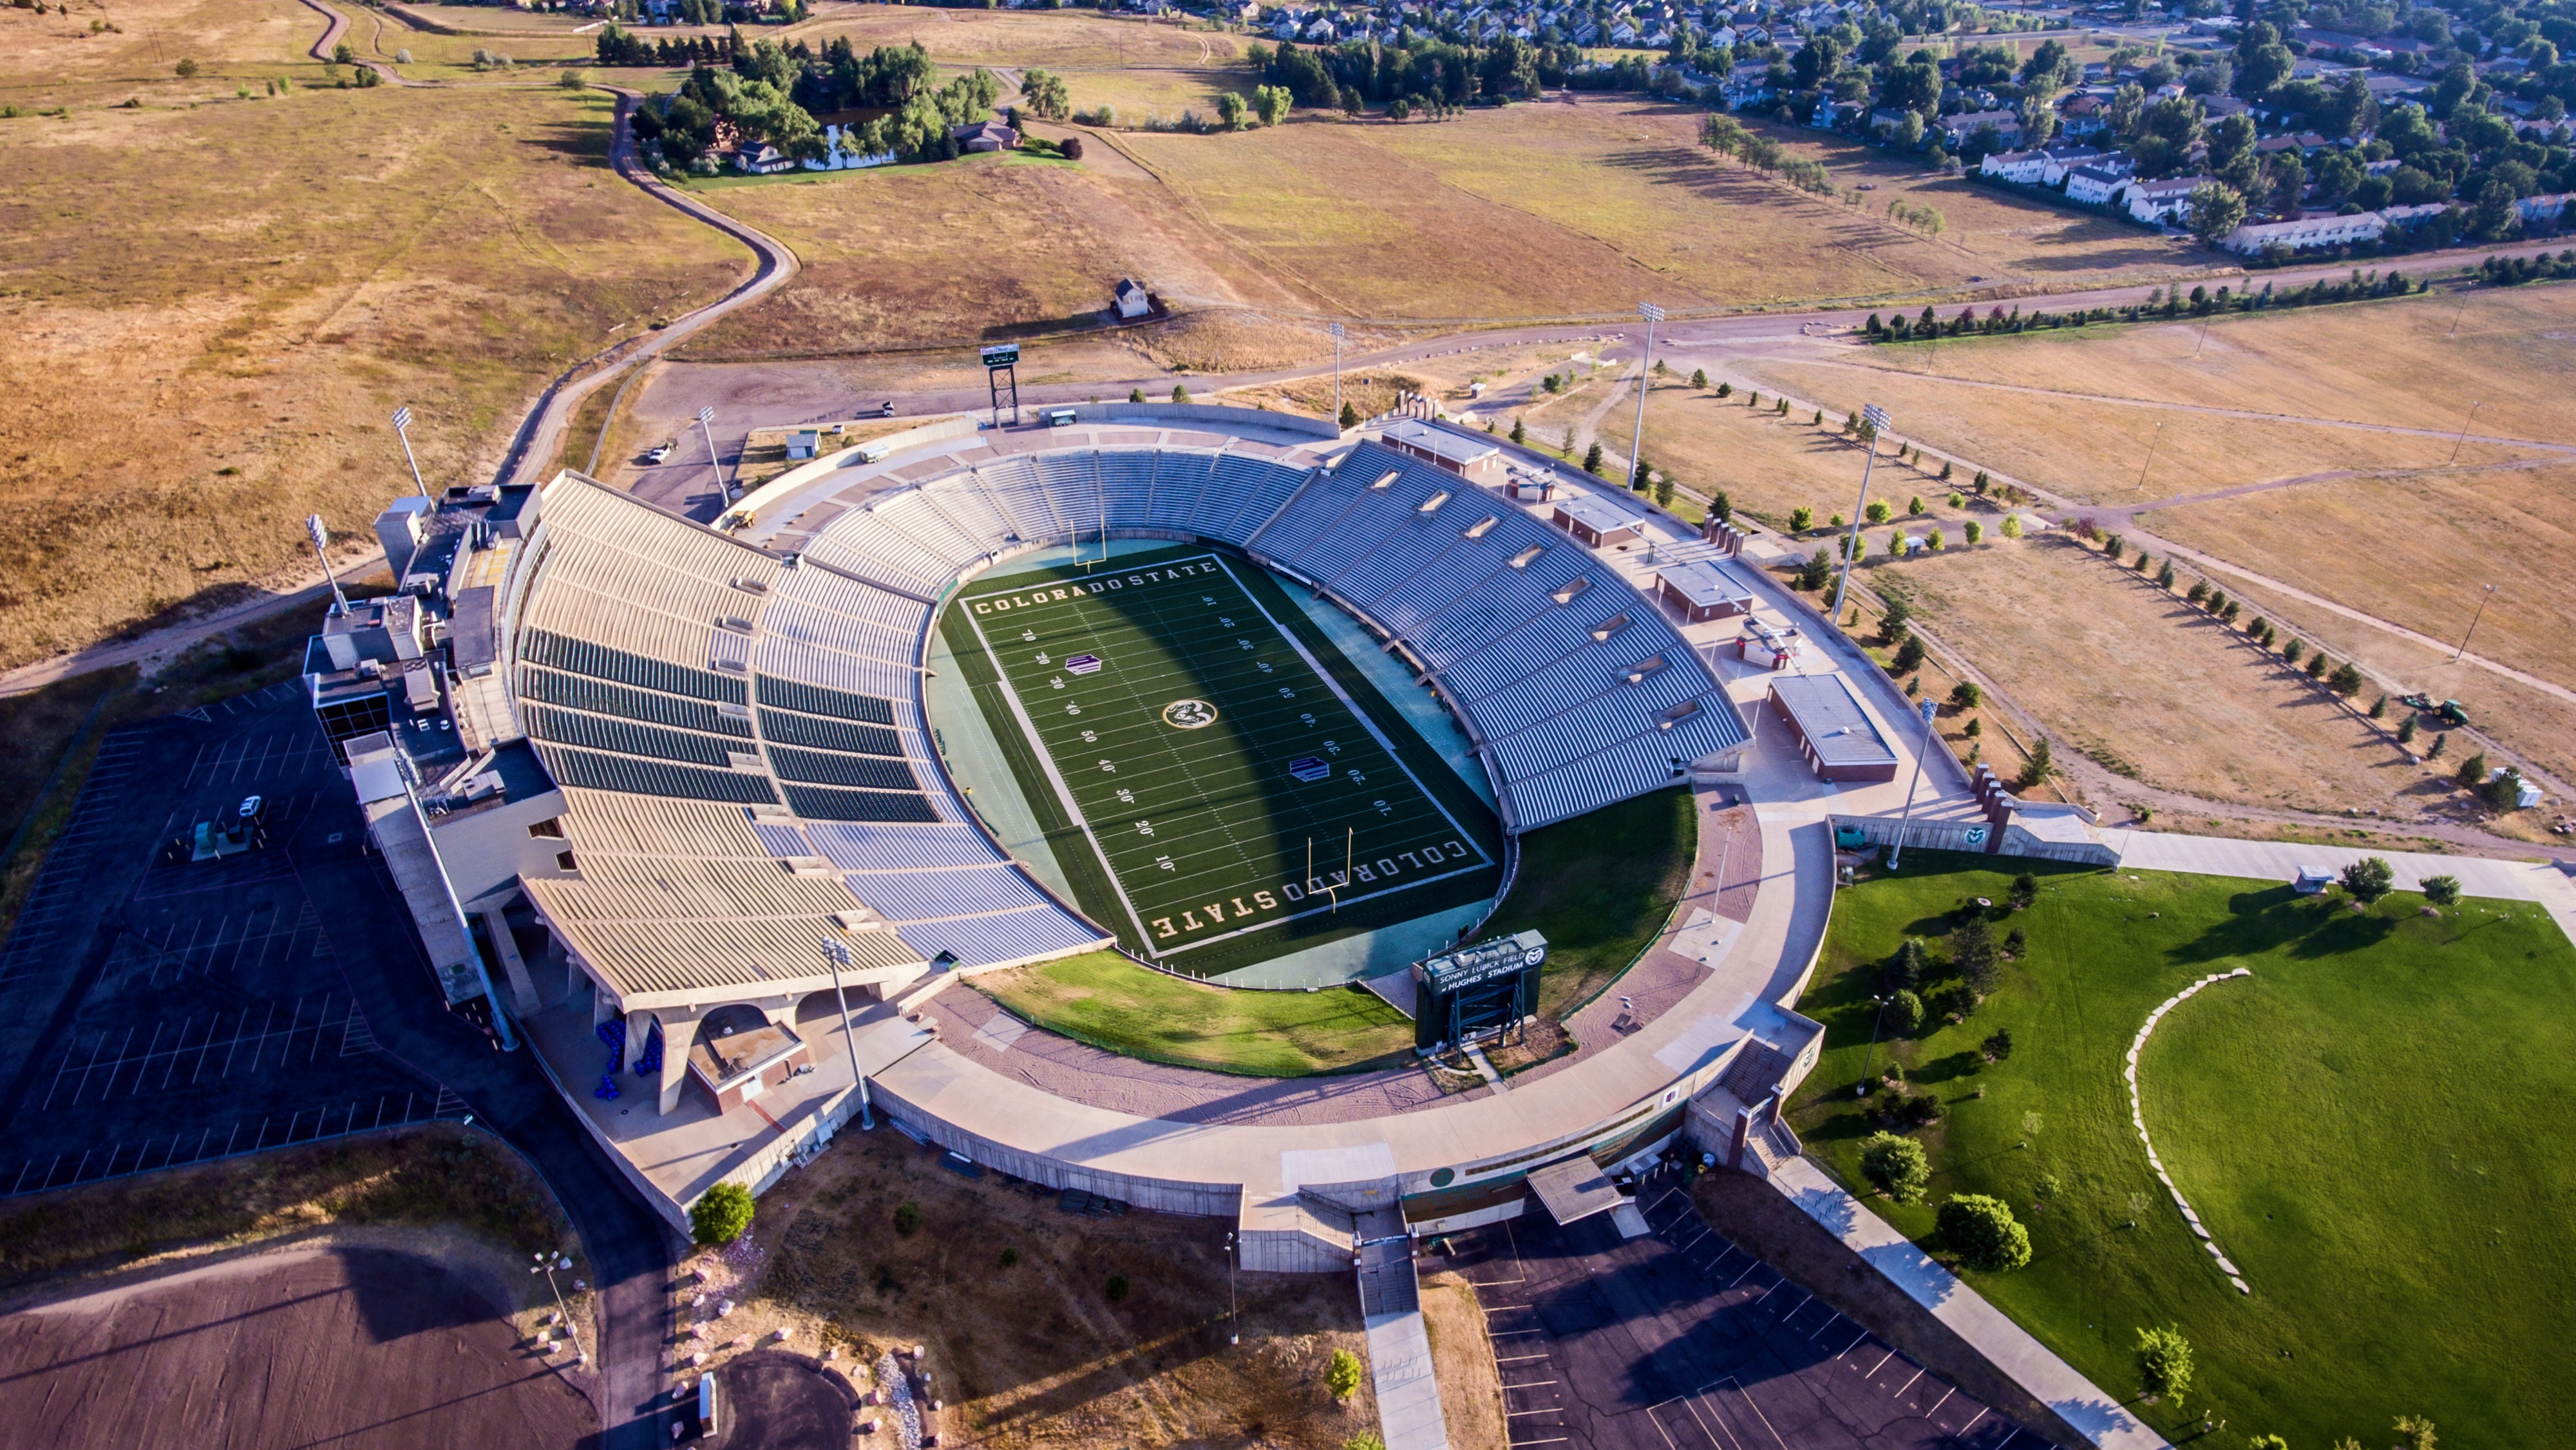 Iphone X Commercial Wallpaper Free Stock Photo Of Arena At Amp T Stadium Building